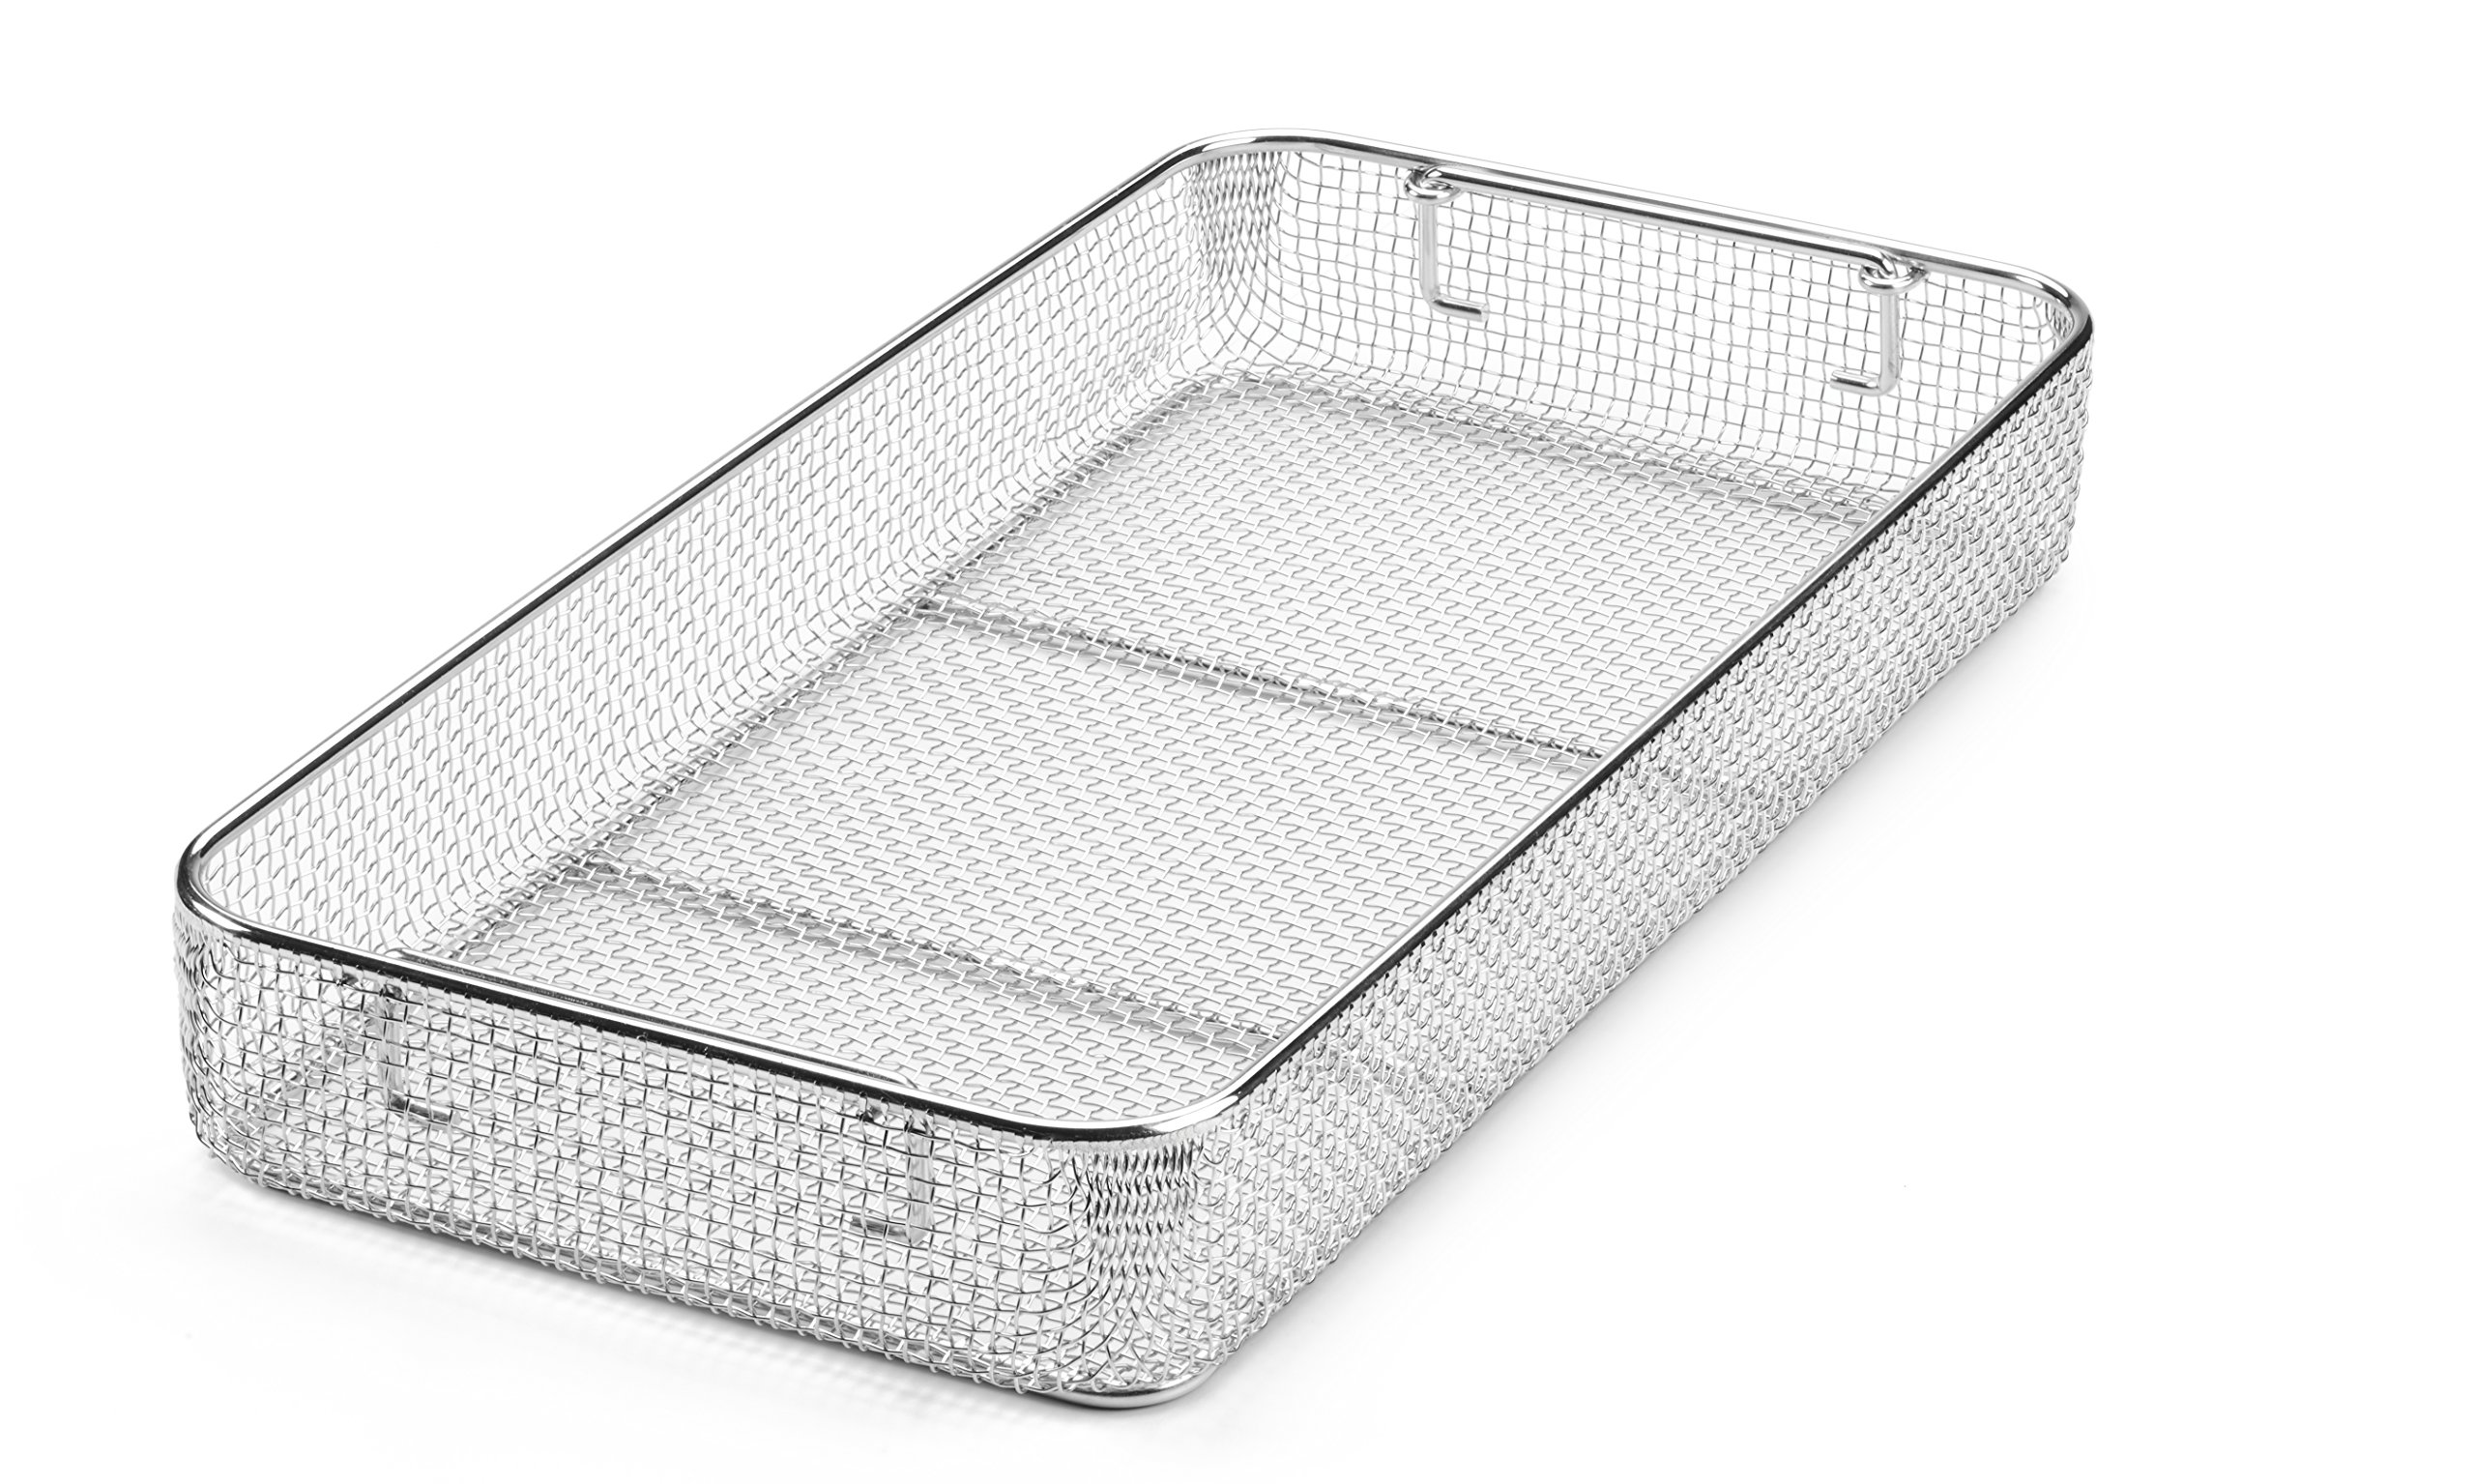 Key Surgical MT-9010 Mesh Tray with Drop Handles, Stainless Steel, 480 mm x 250 mm x 70 mm